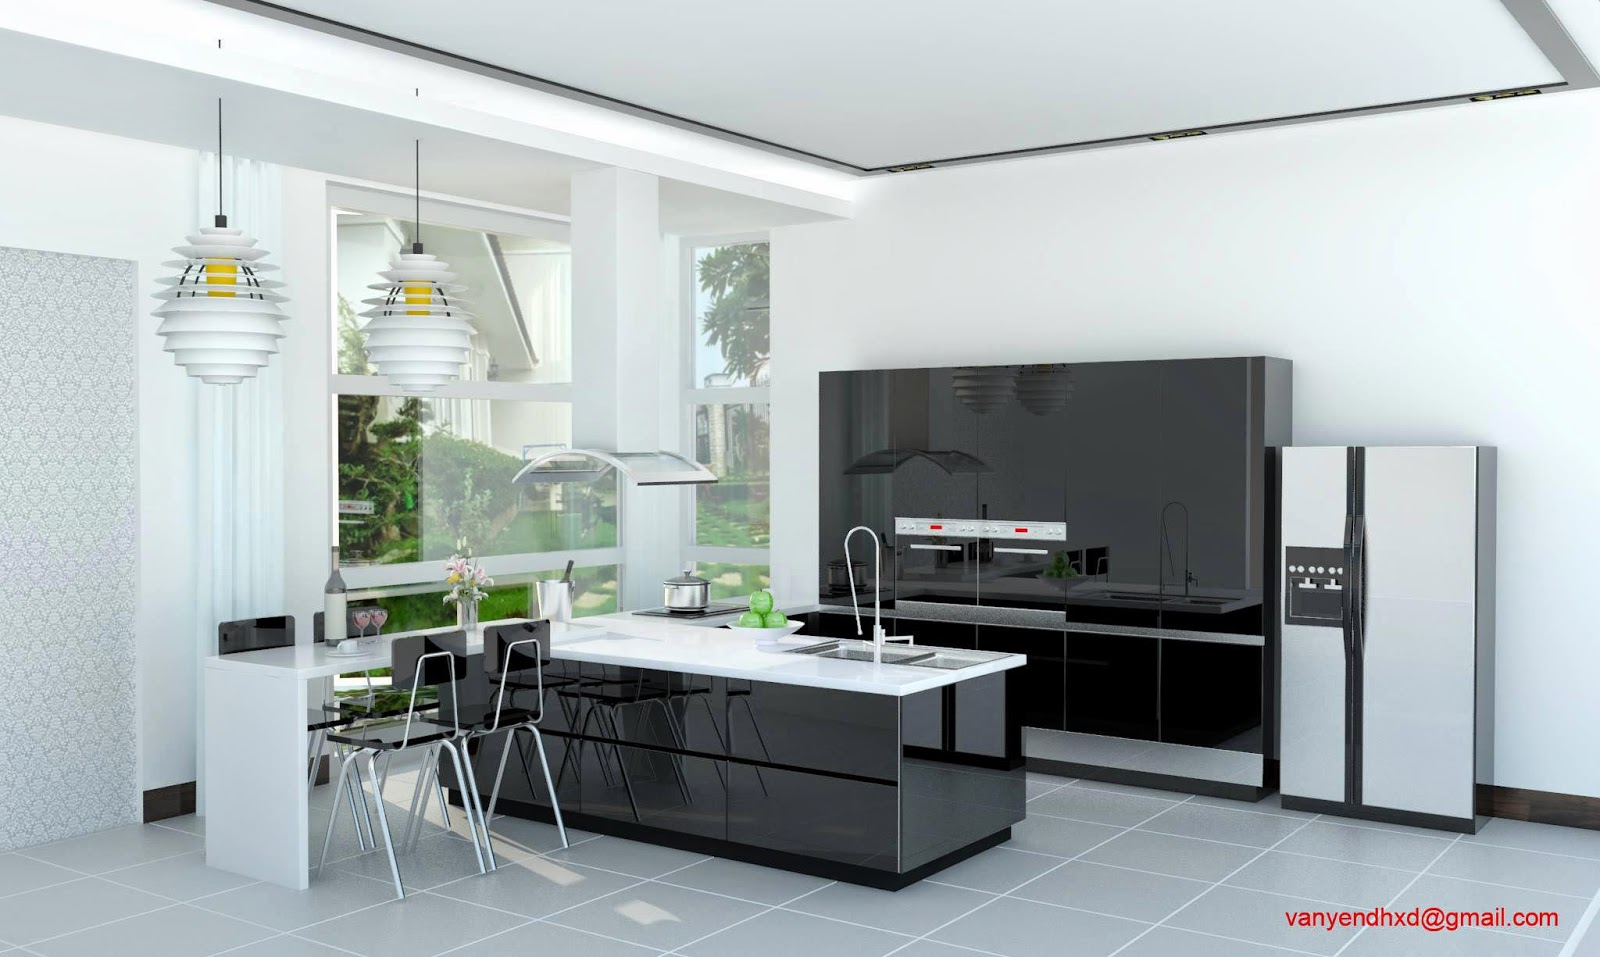 Kitchen Design Job Bristol